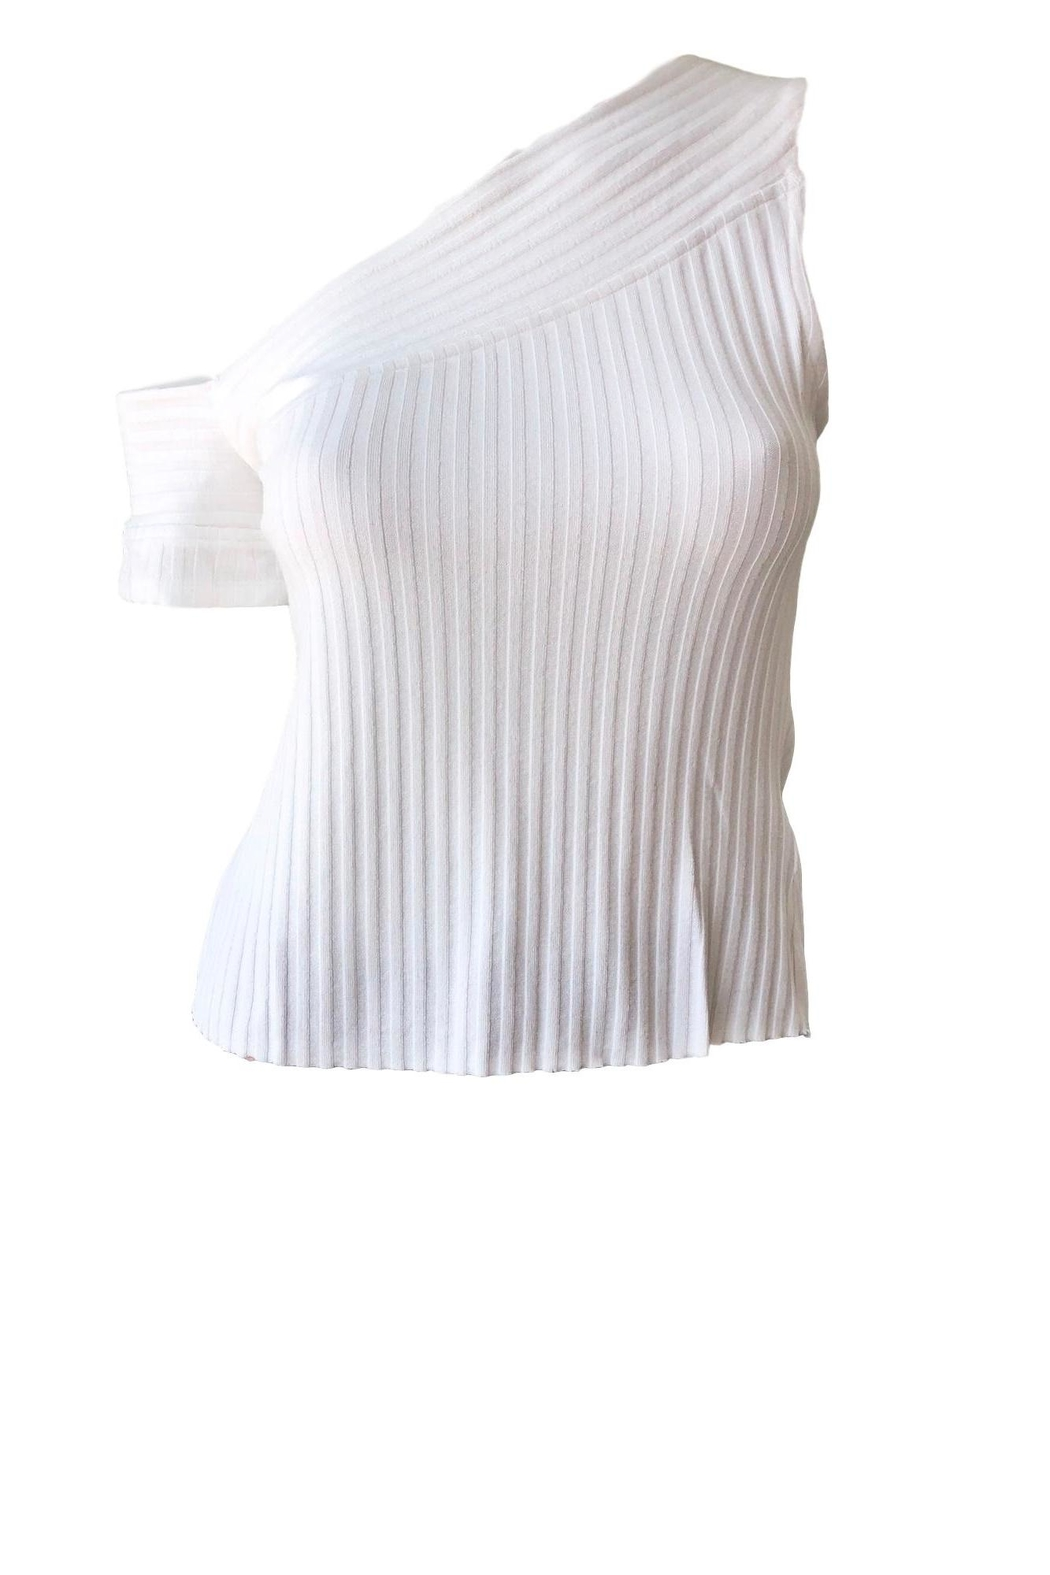 THE RANGE NYC Ribbed One-Sleeve Top - Front Cropped Image